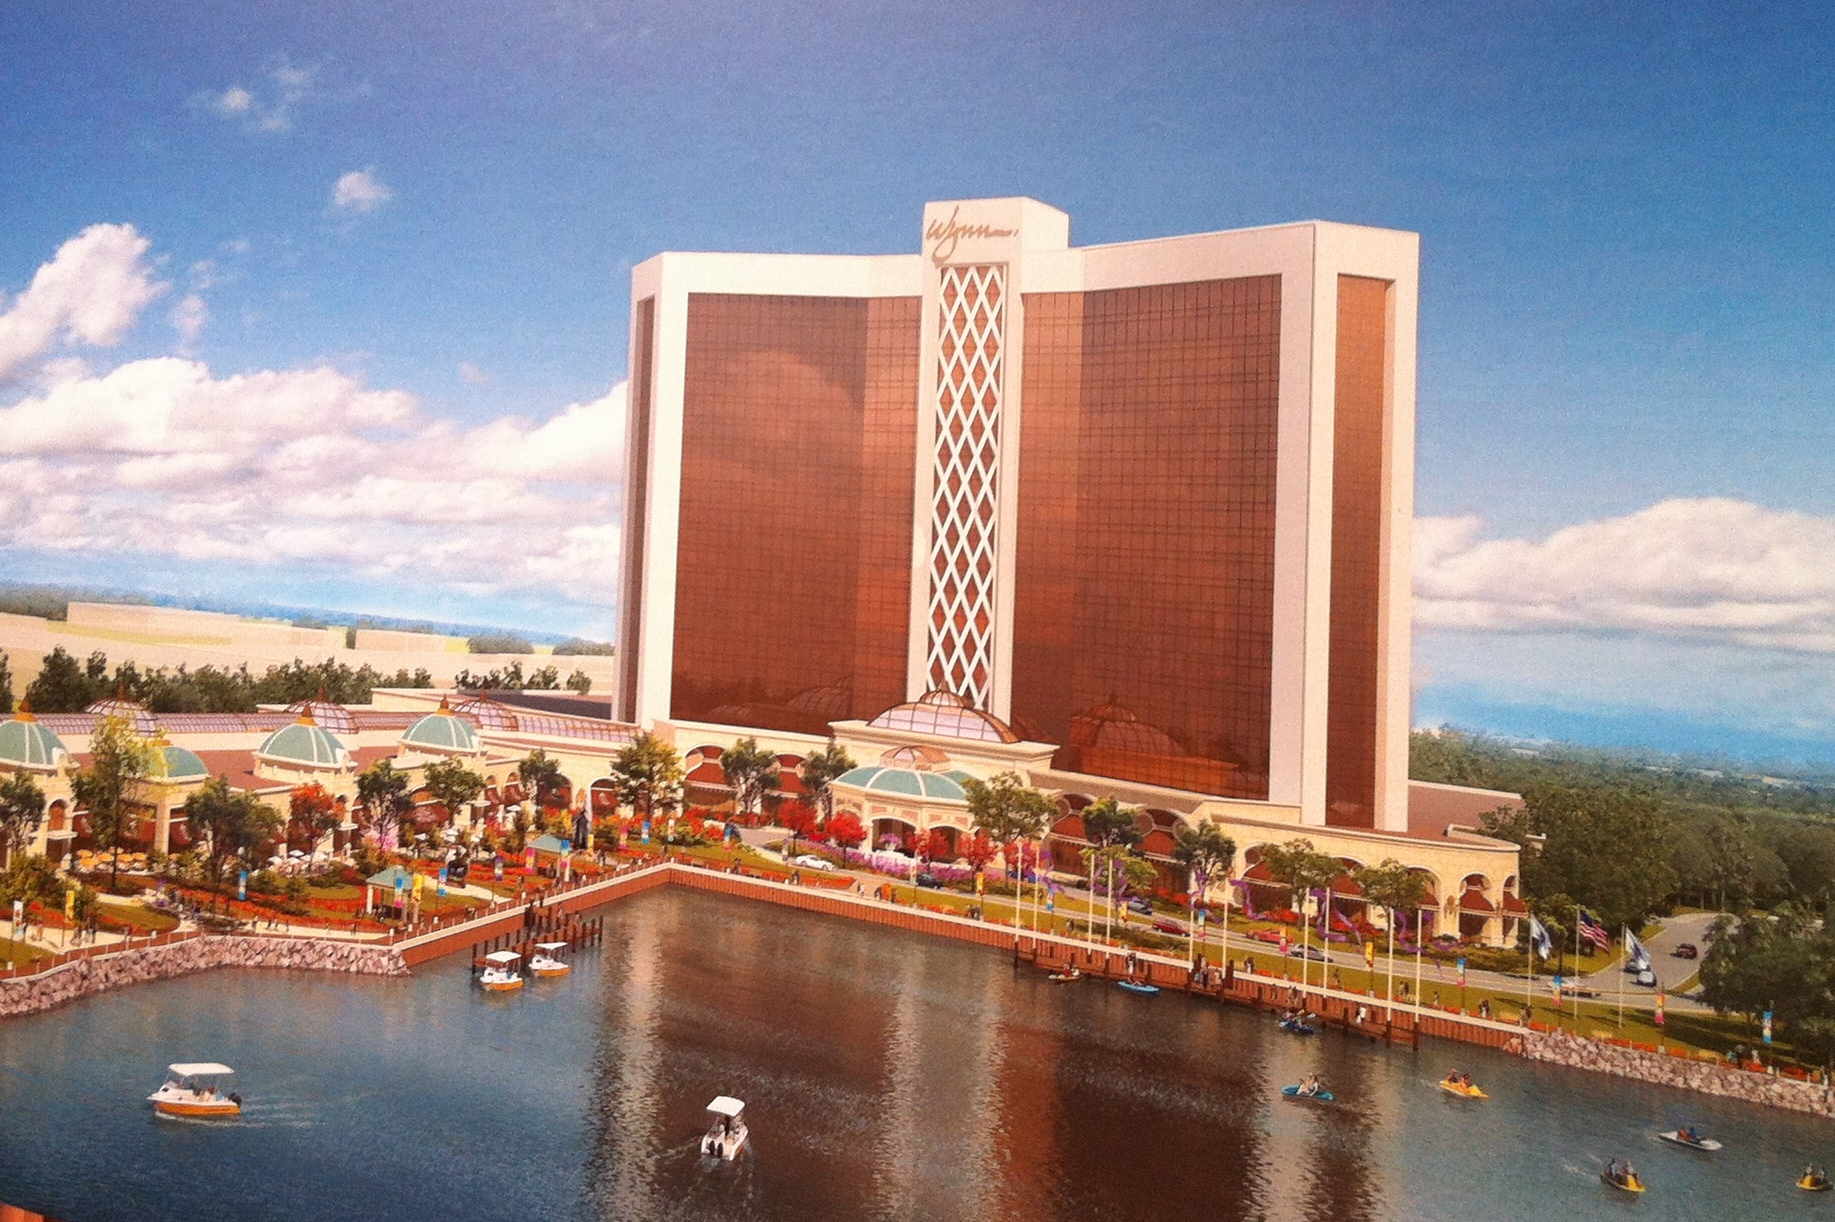 Artist rendering of Wynn Everett